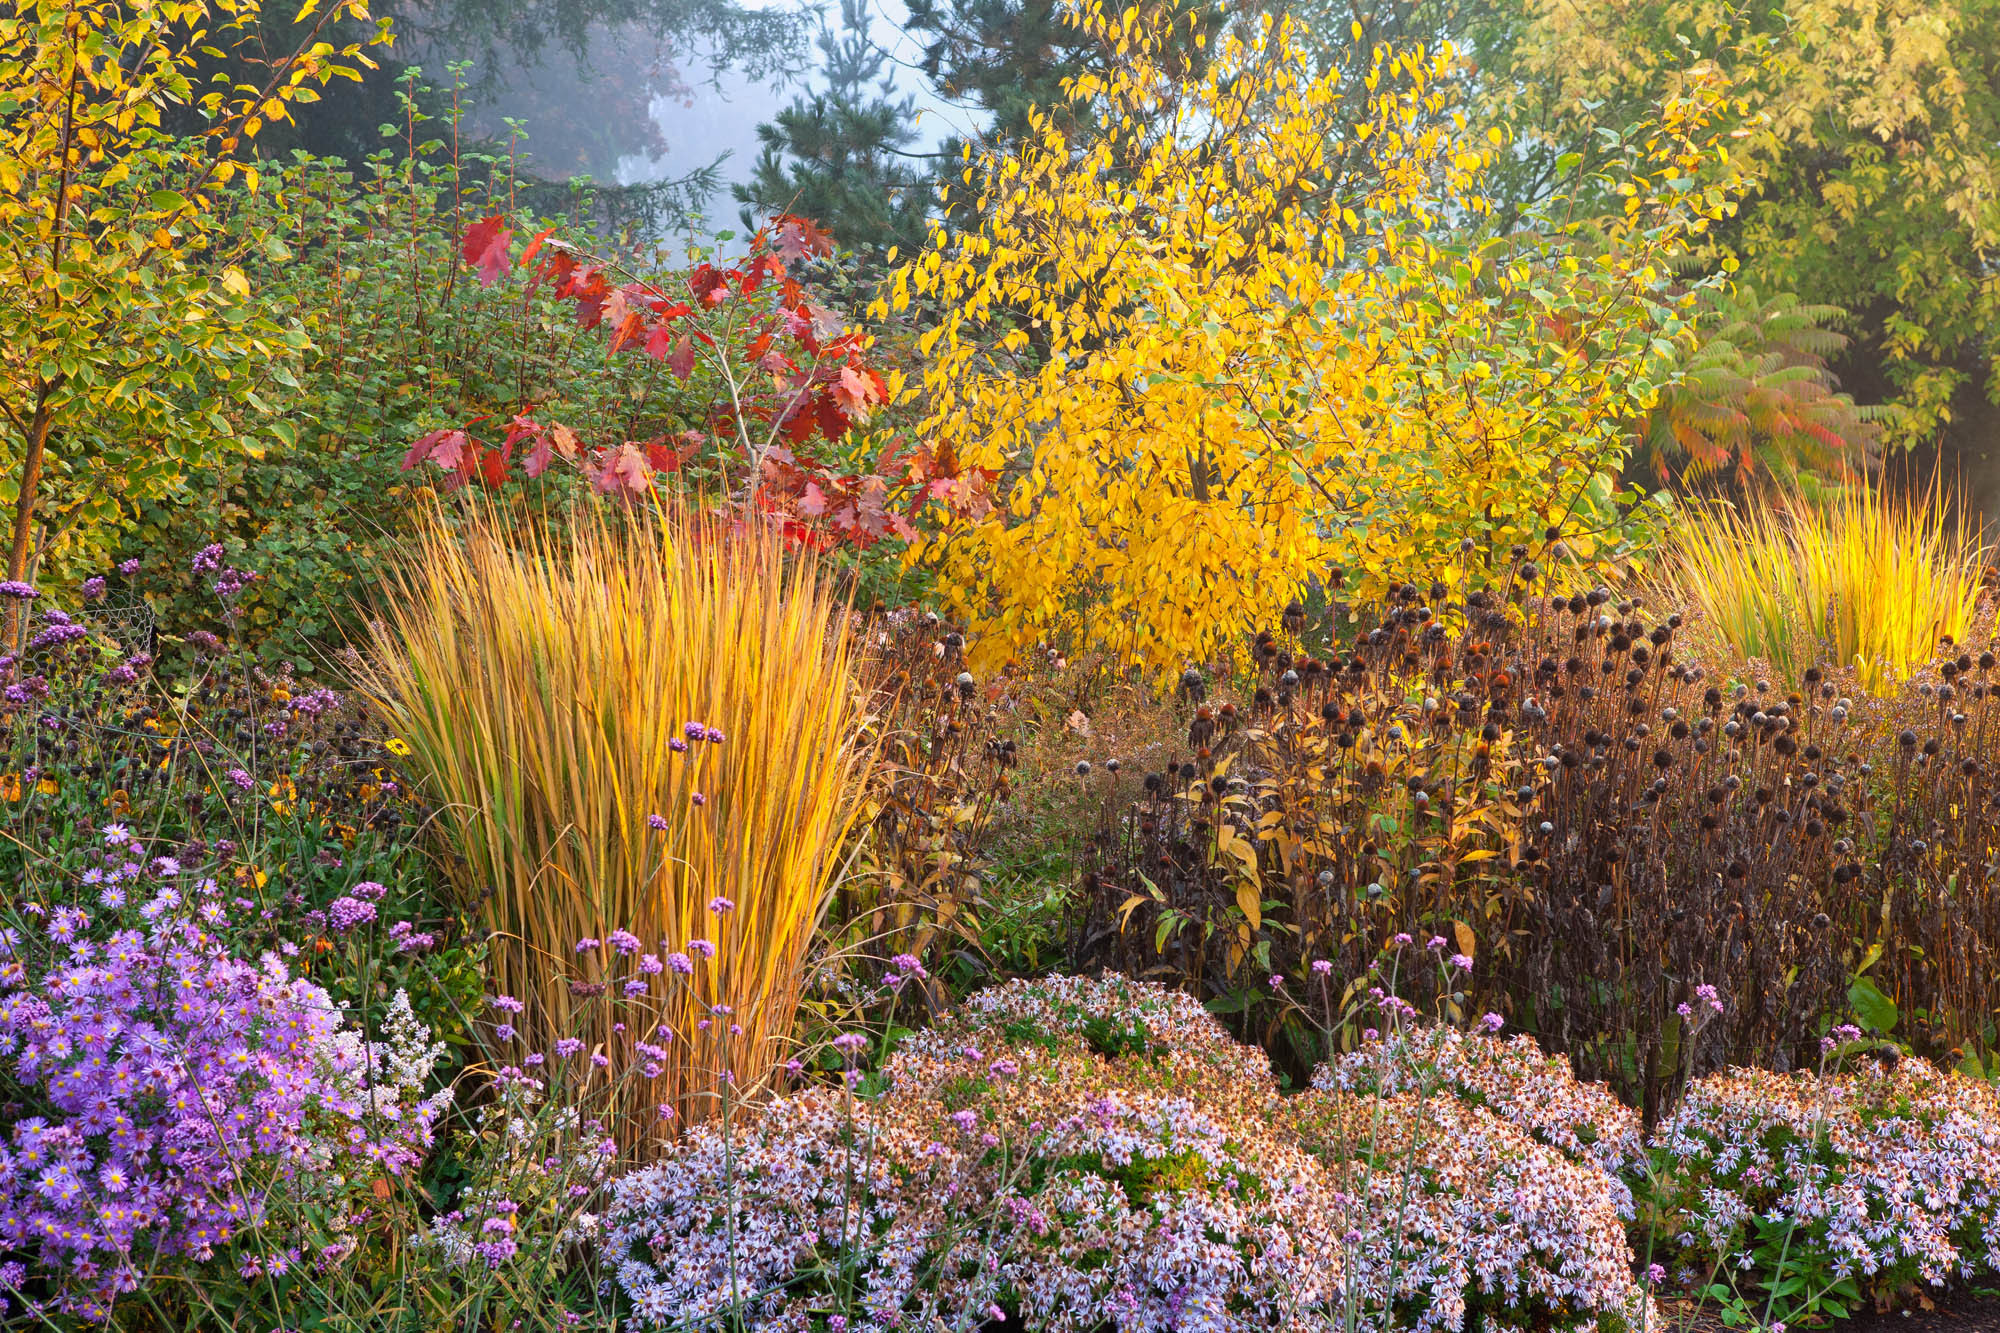 Richard bloom garden photographer 39 s association - Mixed style gardens ...